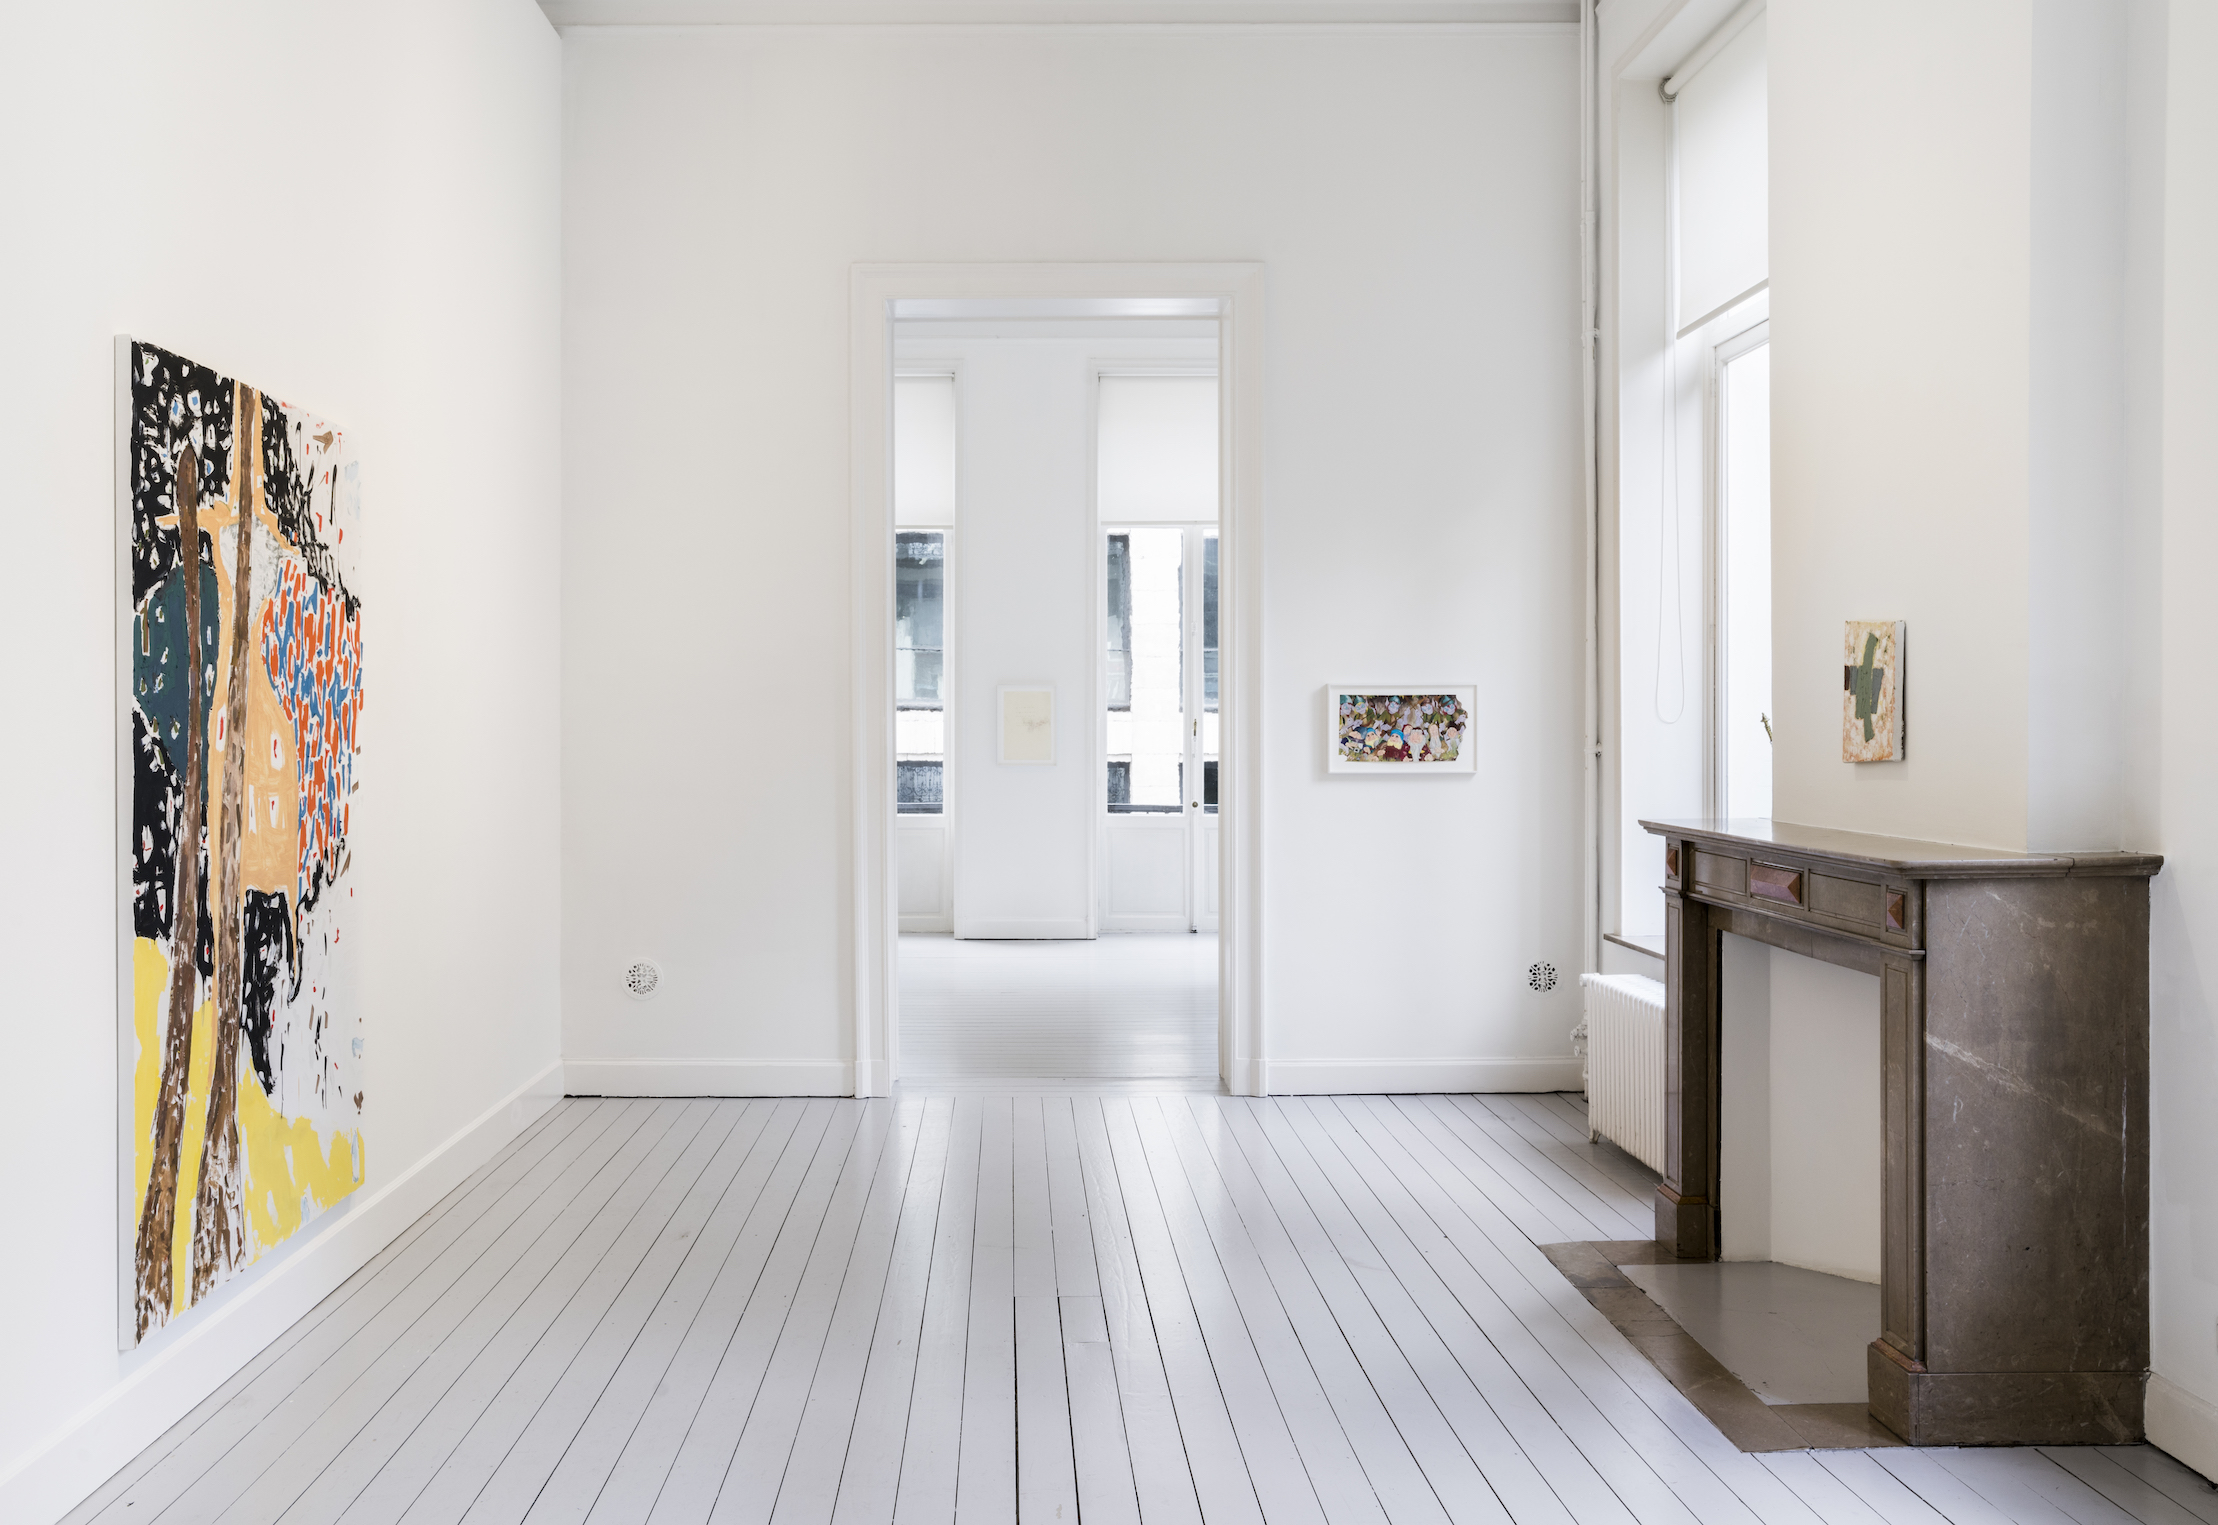 Installation View 7: Richard Aldrich, at Gladstone Gallery, Brussels, 2020 Courtesy the artist and Gladstone Gallery, New York and Brussels